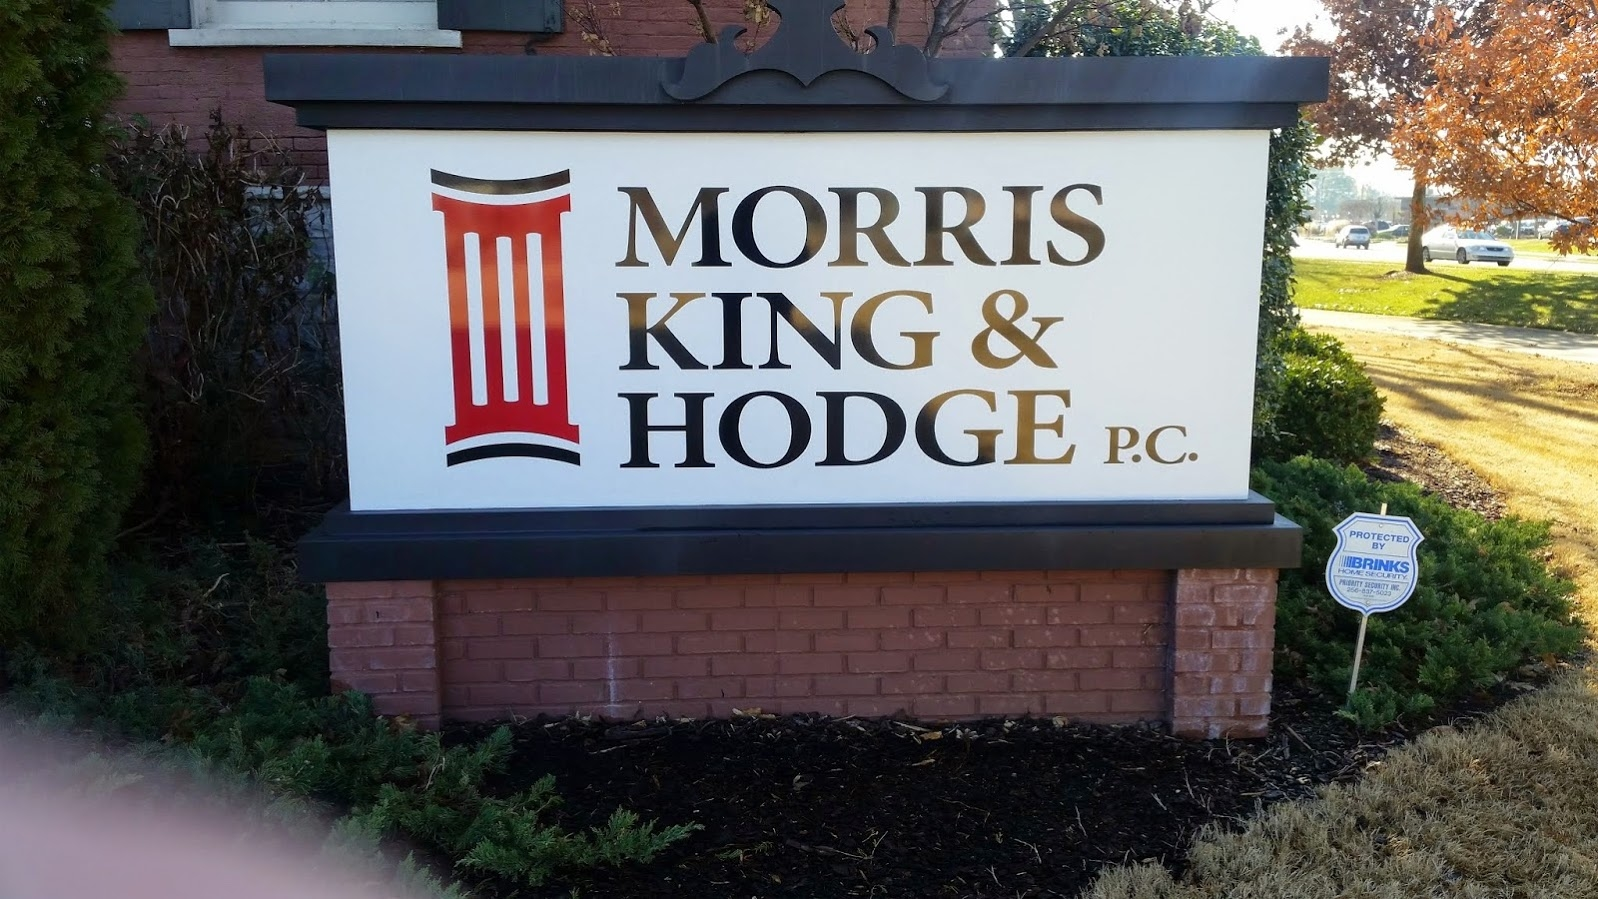 Morris, King & Hodge Personal Injury Law Firm in Huntsville Alabama